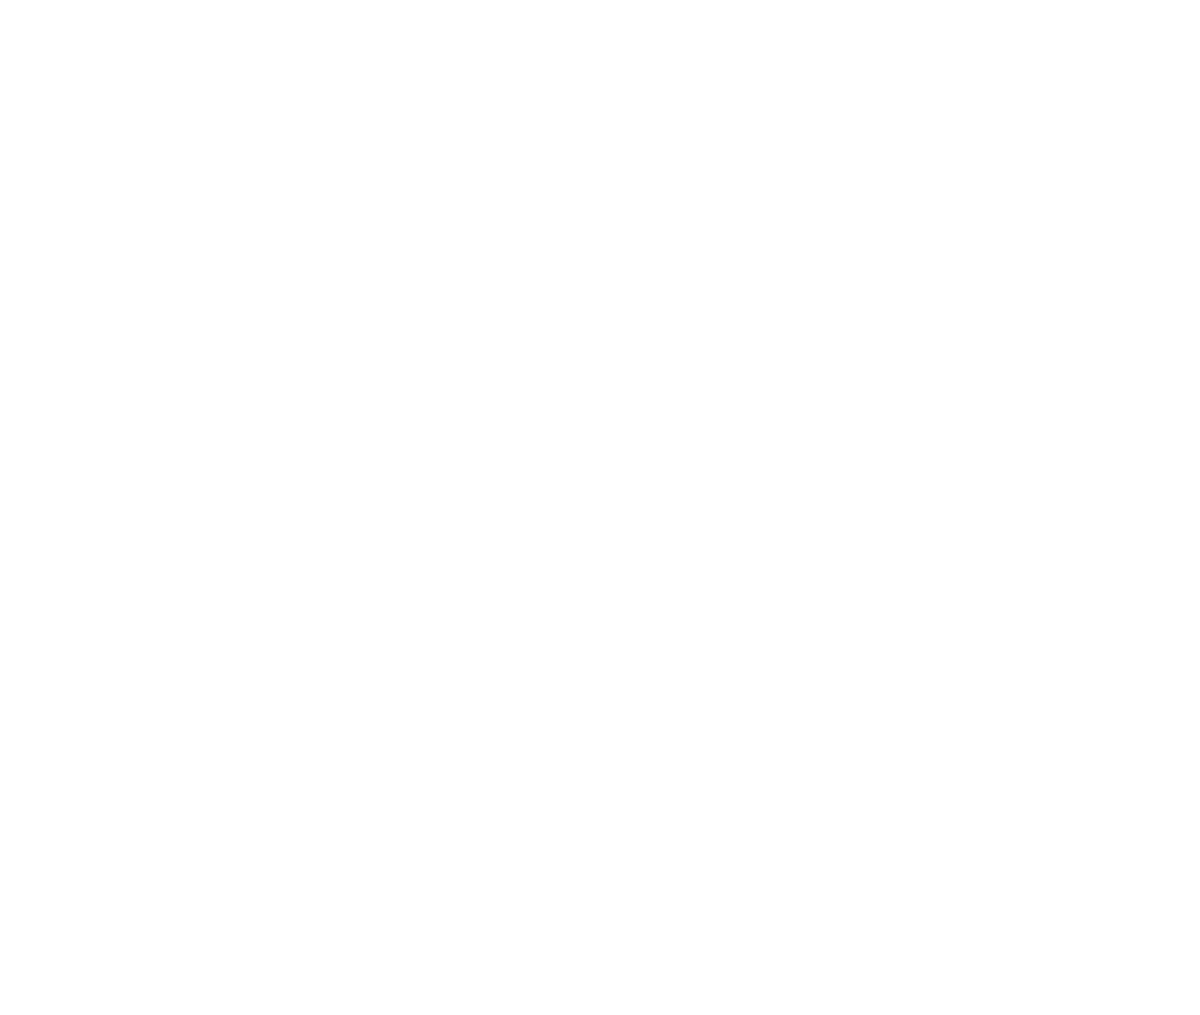 Figtree roles